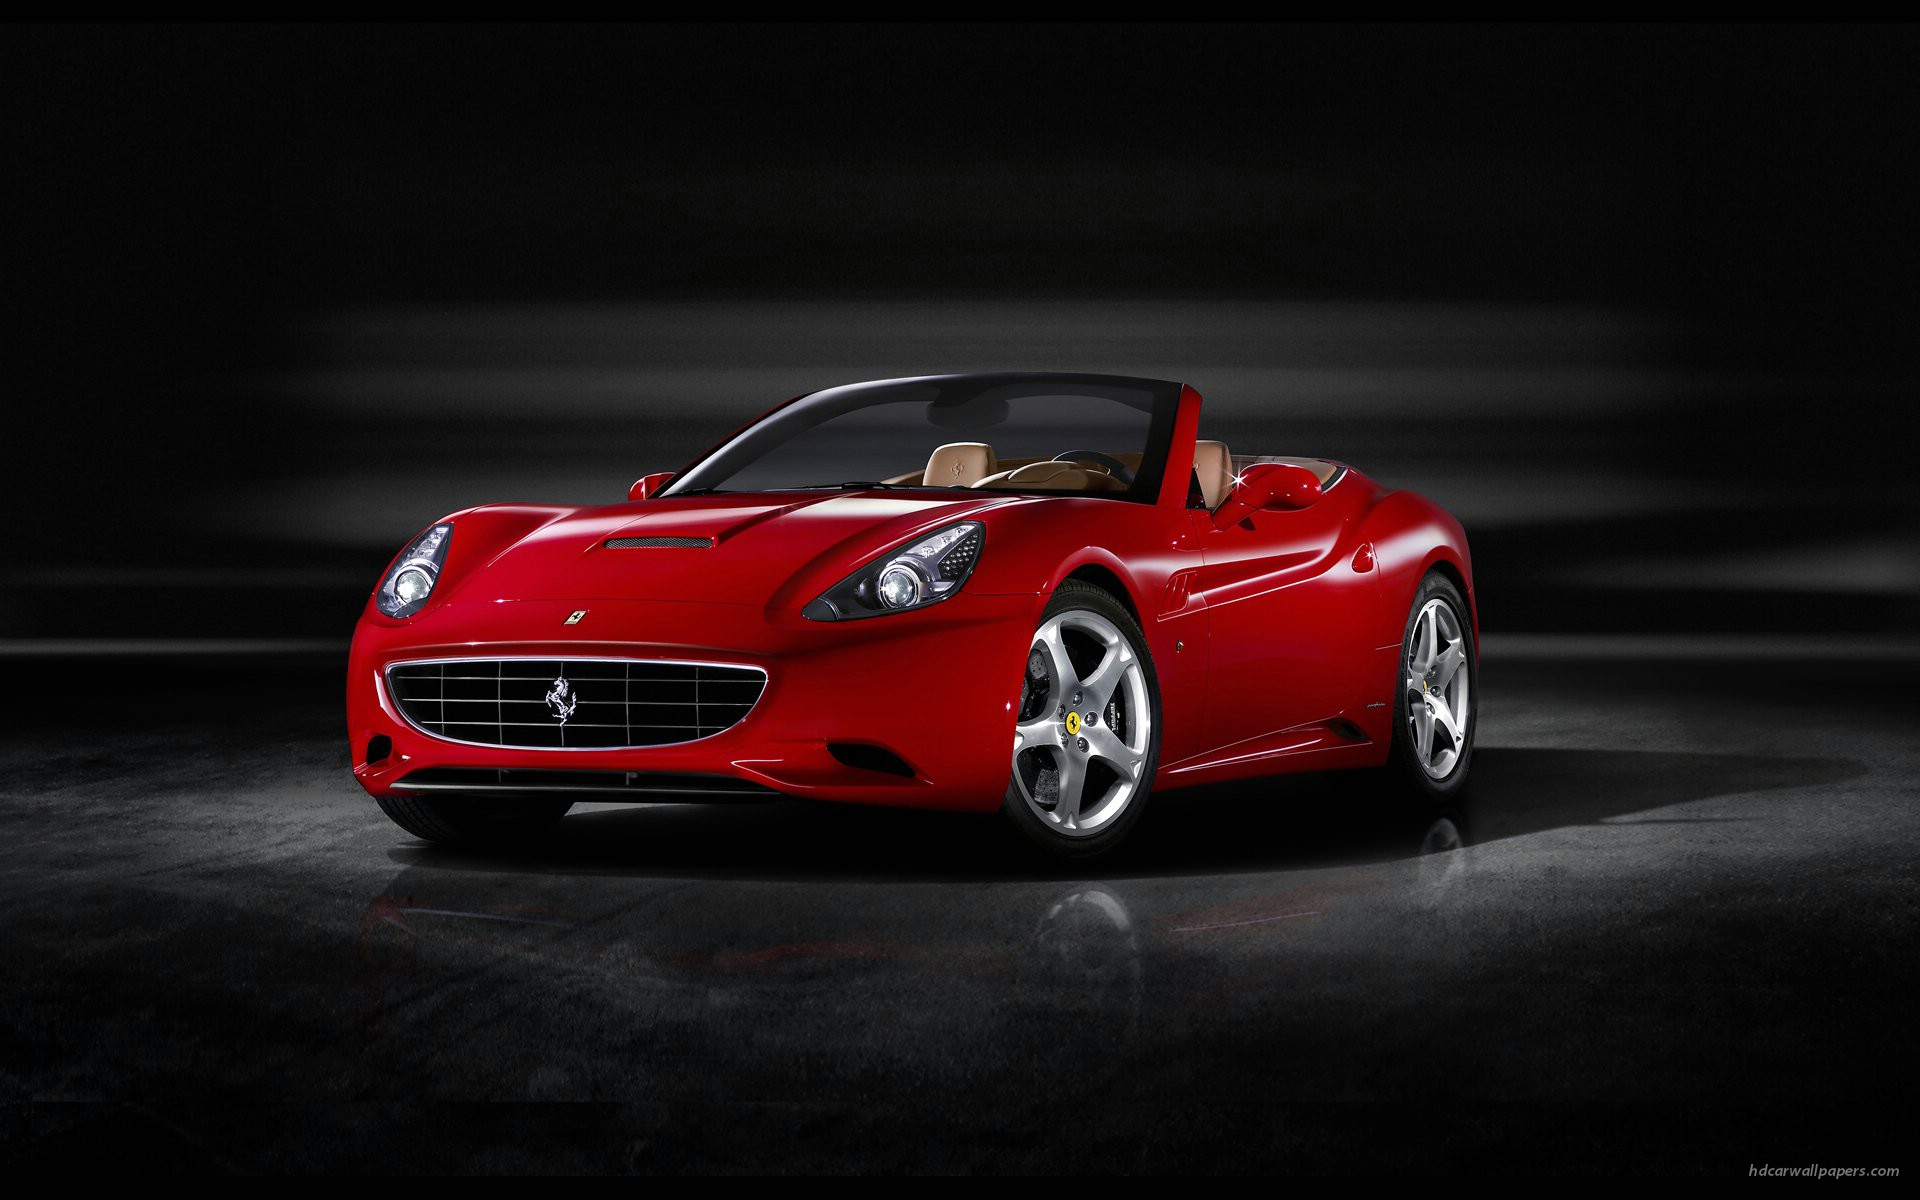 Ferrari California 6 wallpaper